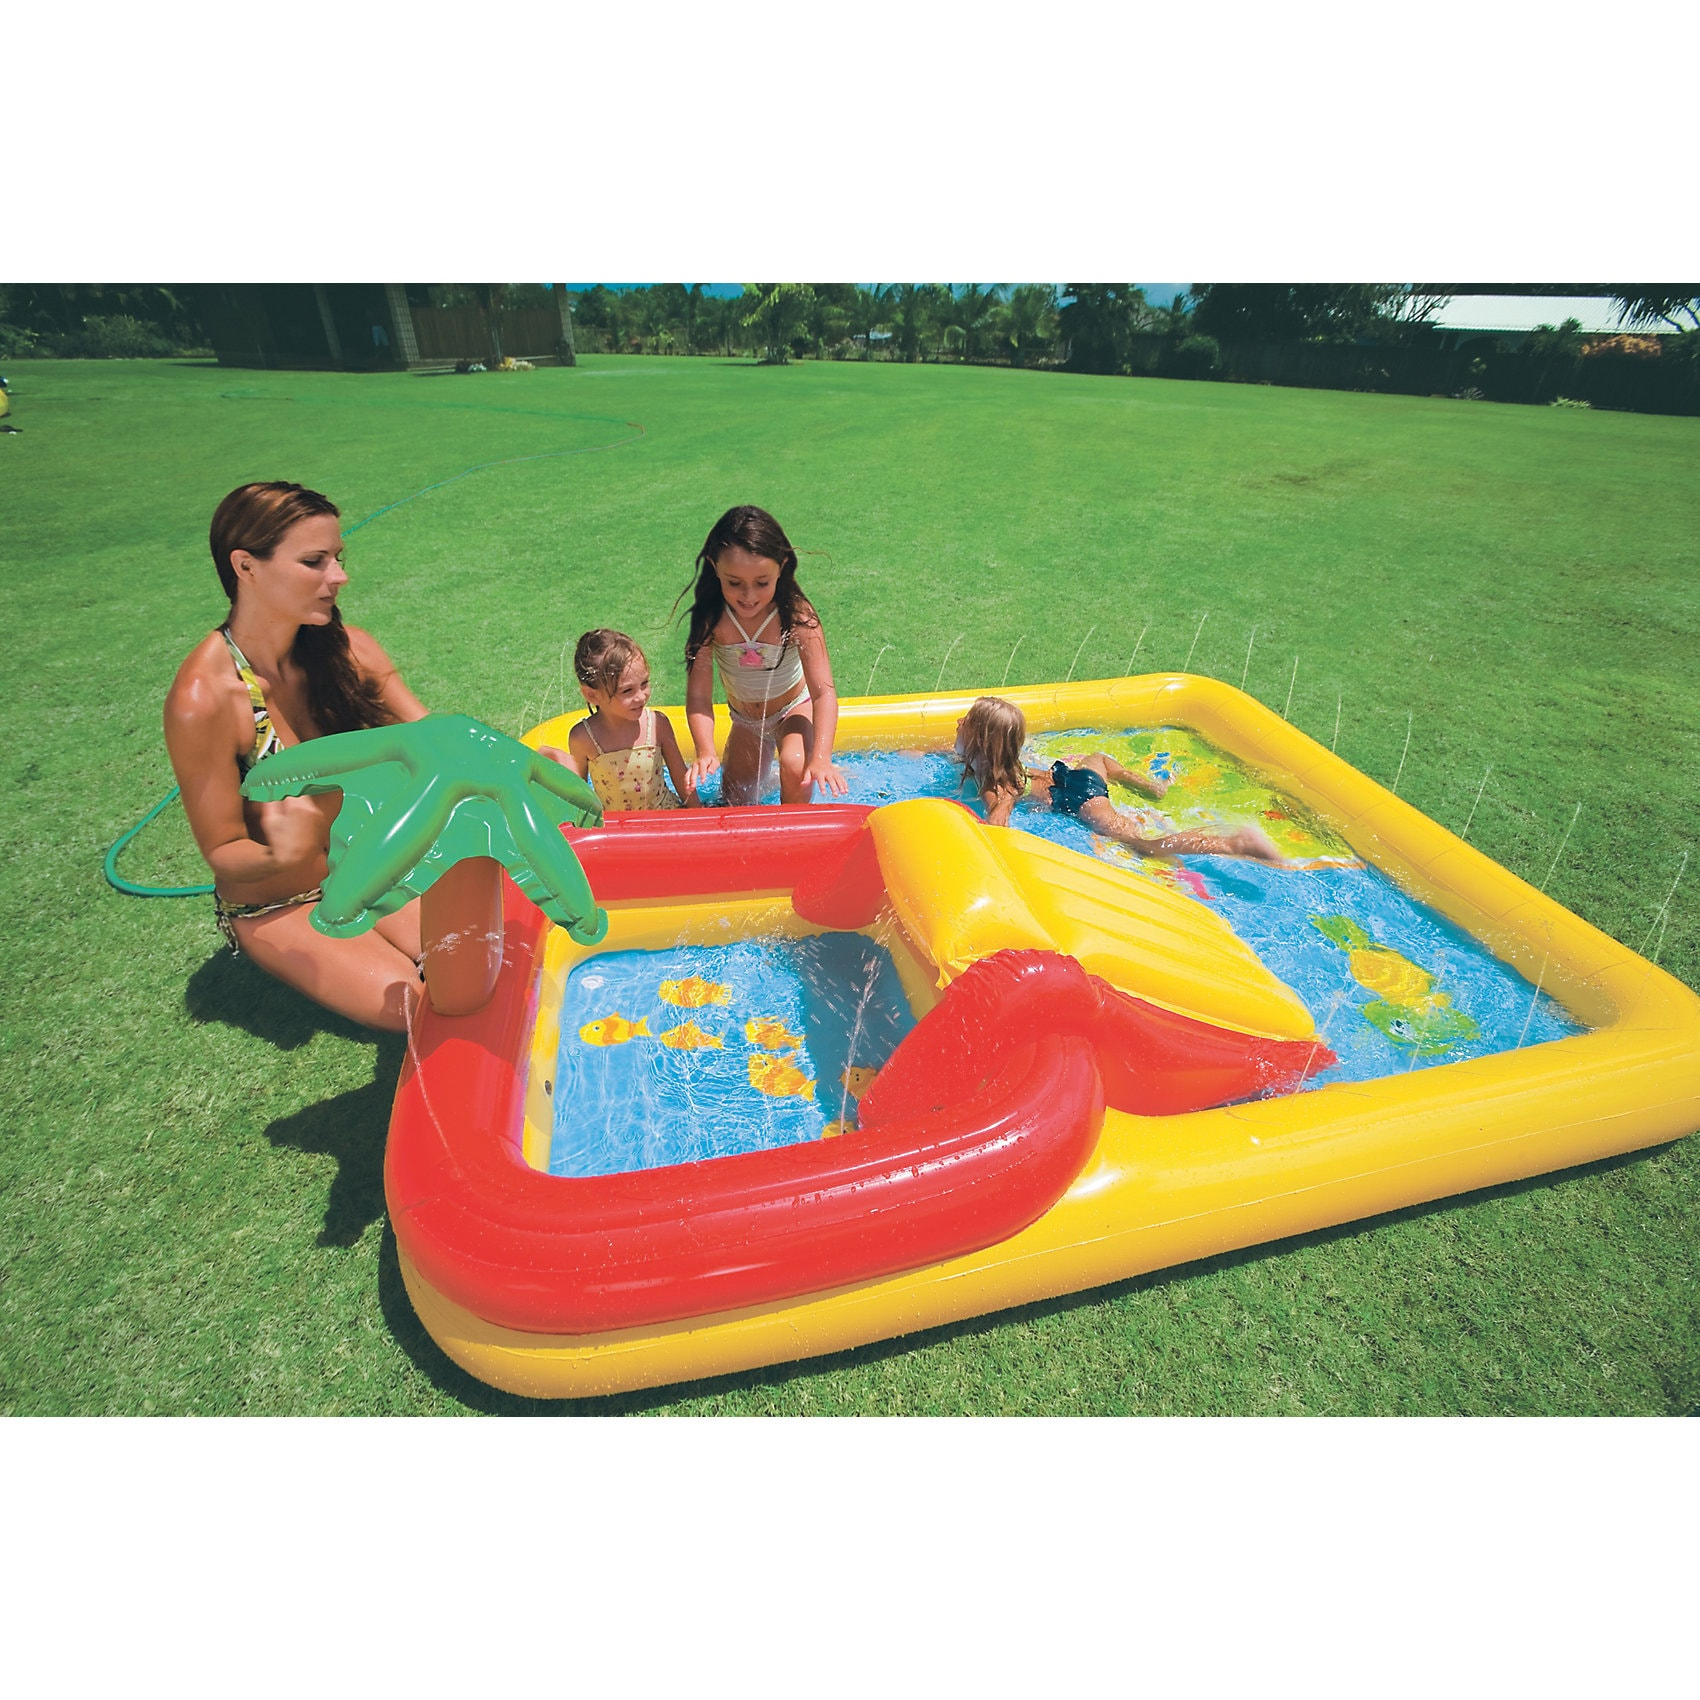 Intex Planschbecken Playcenter Ocean 254x196cm